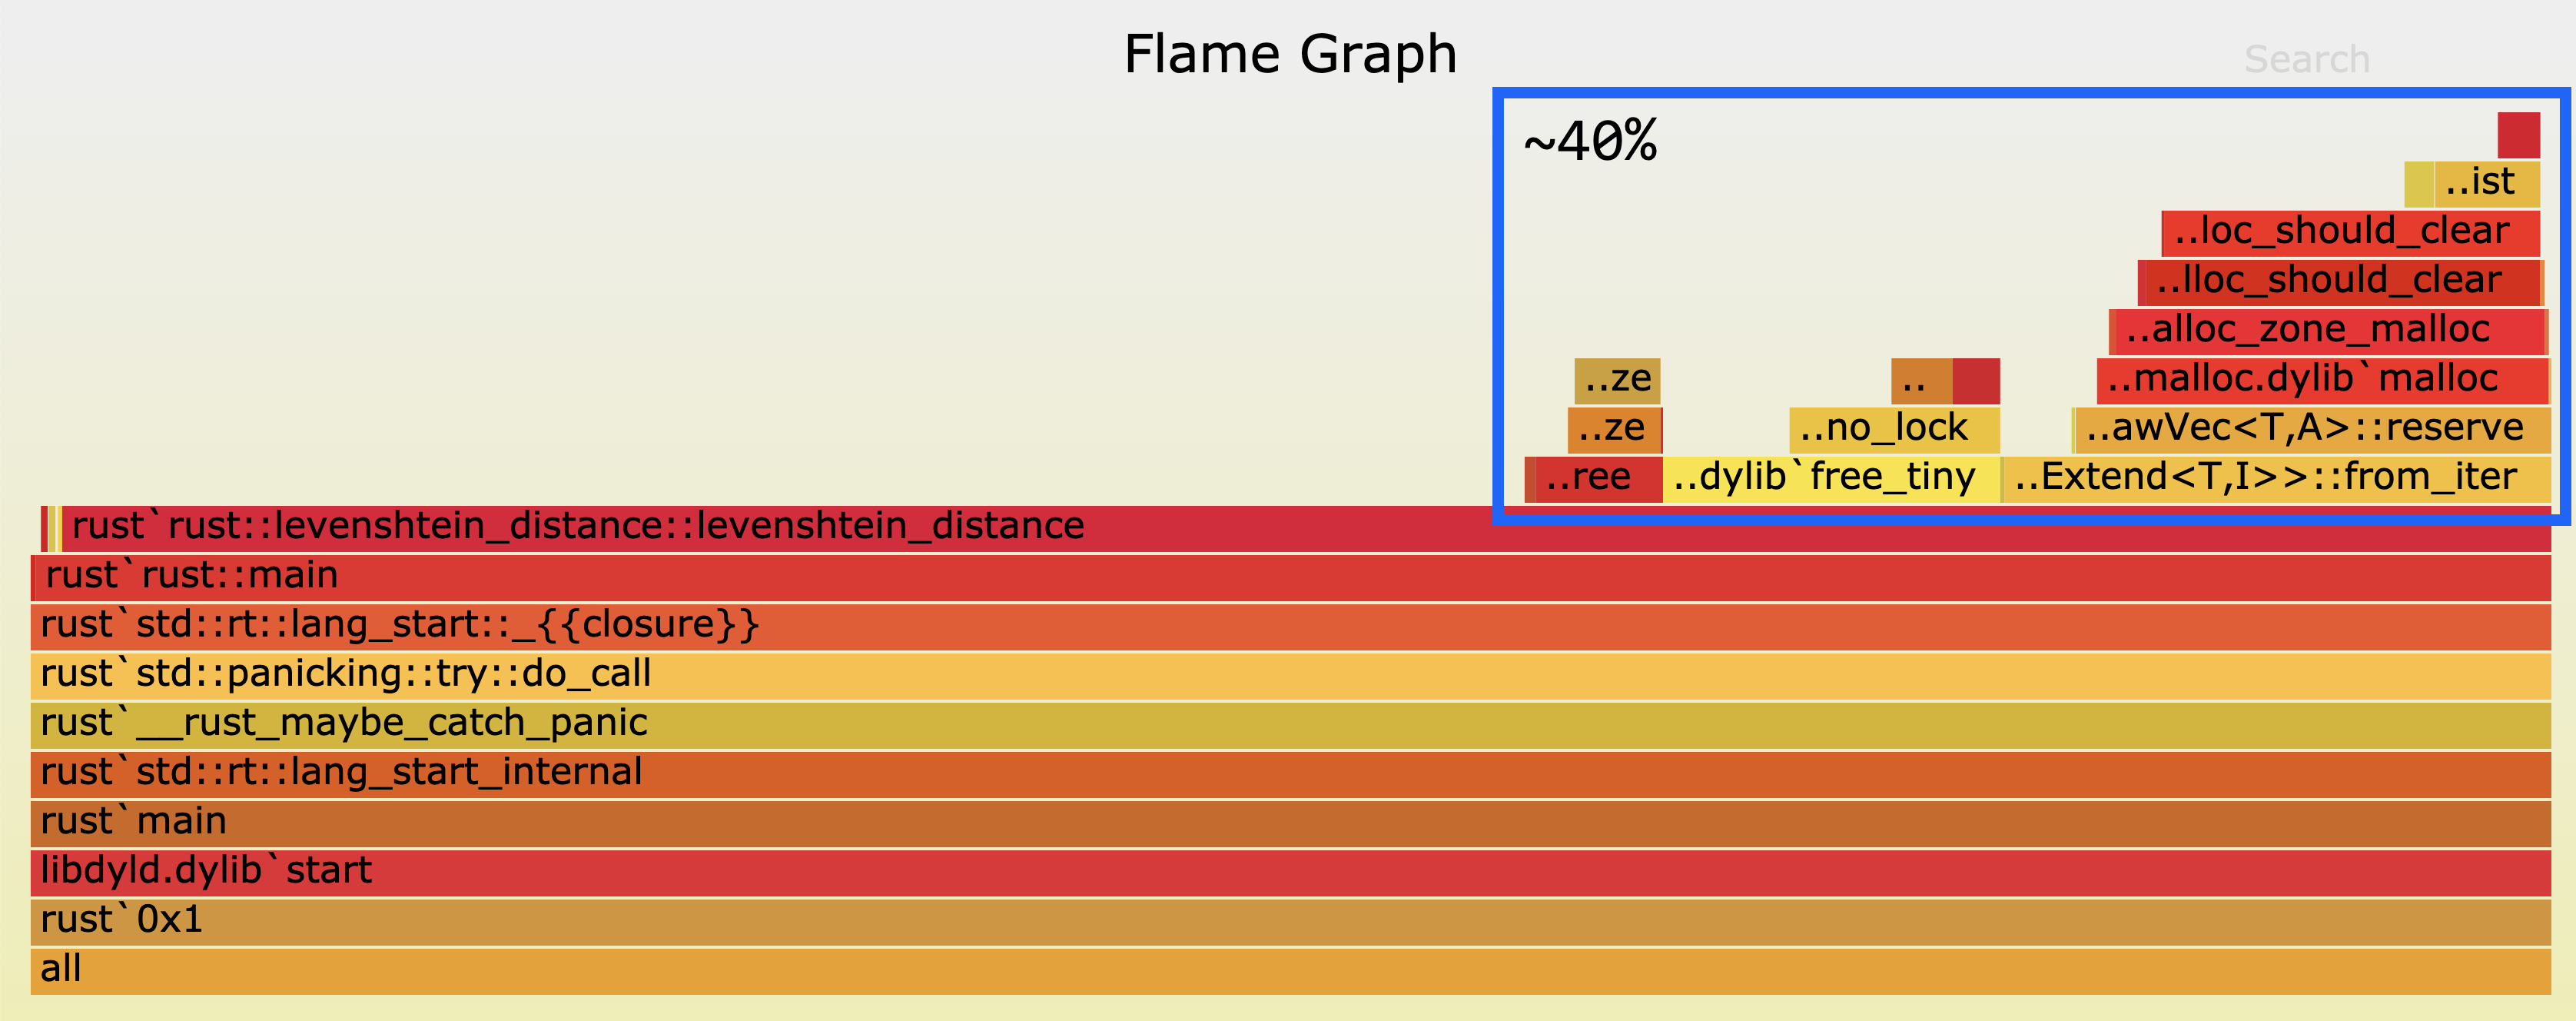 Flamegraph before, with system allocator. Roughly 40% of execution time spent allocating